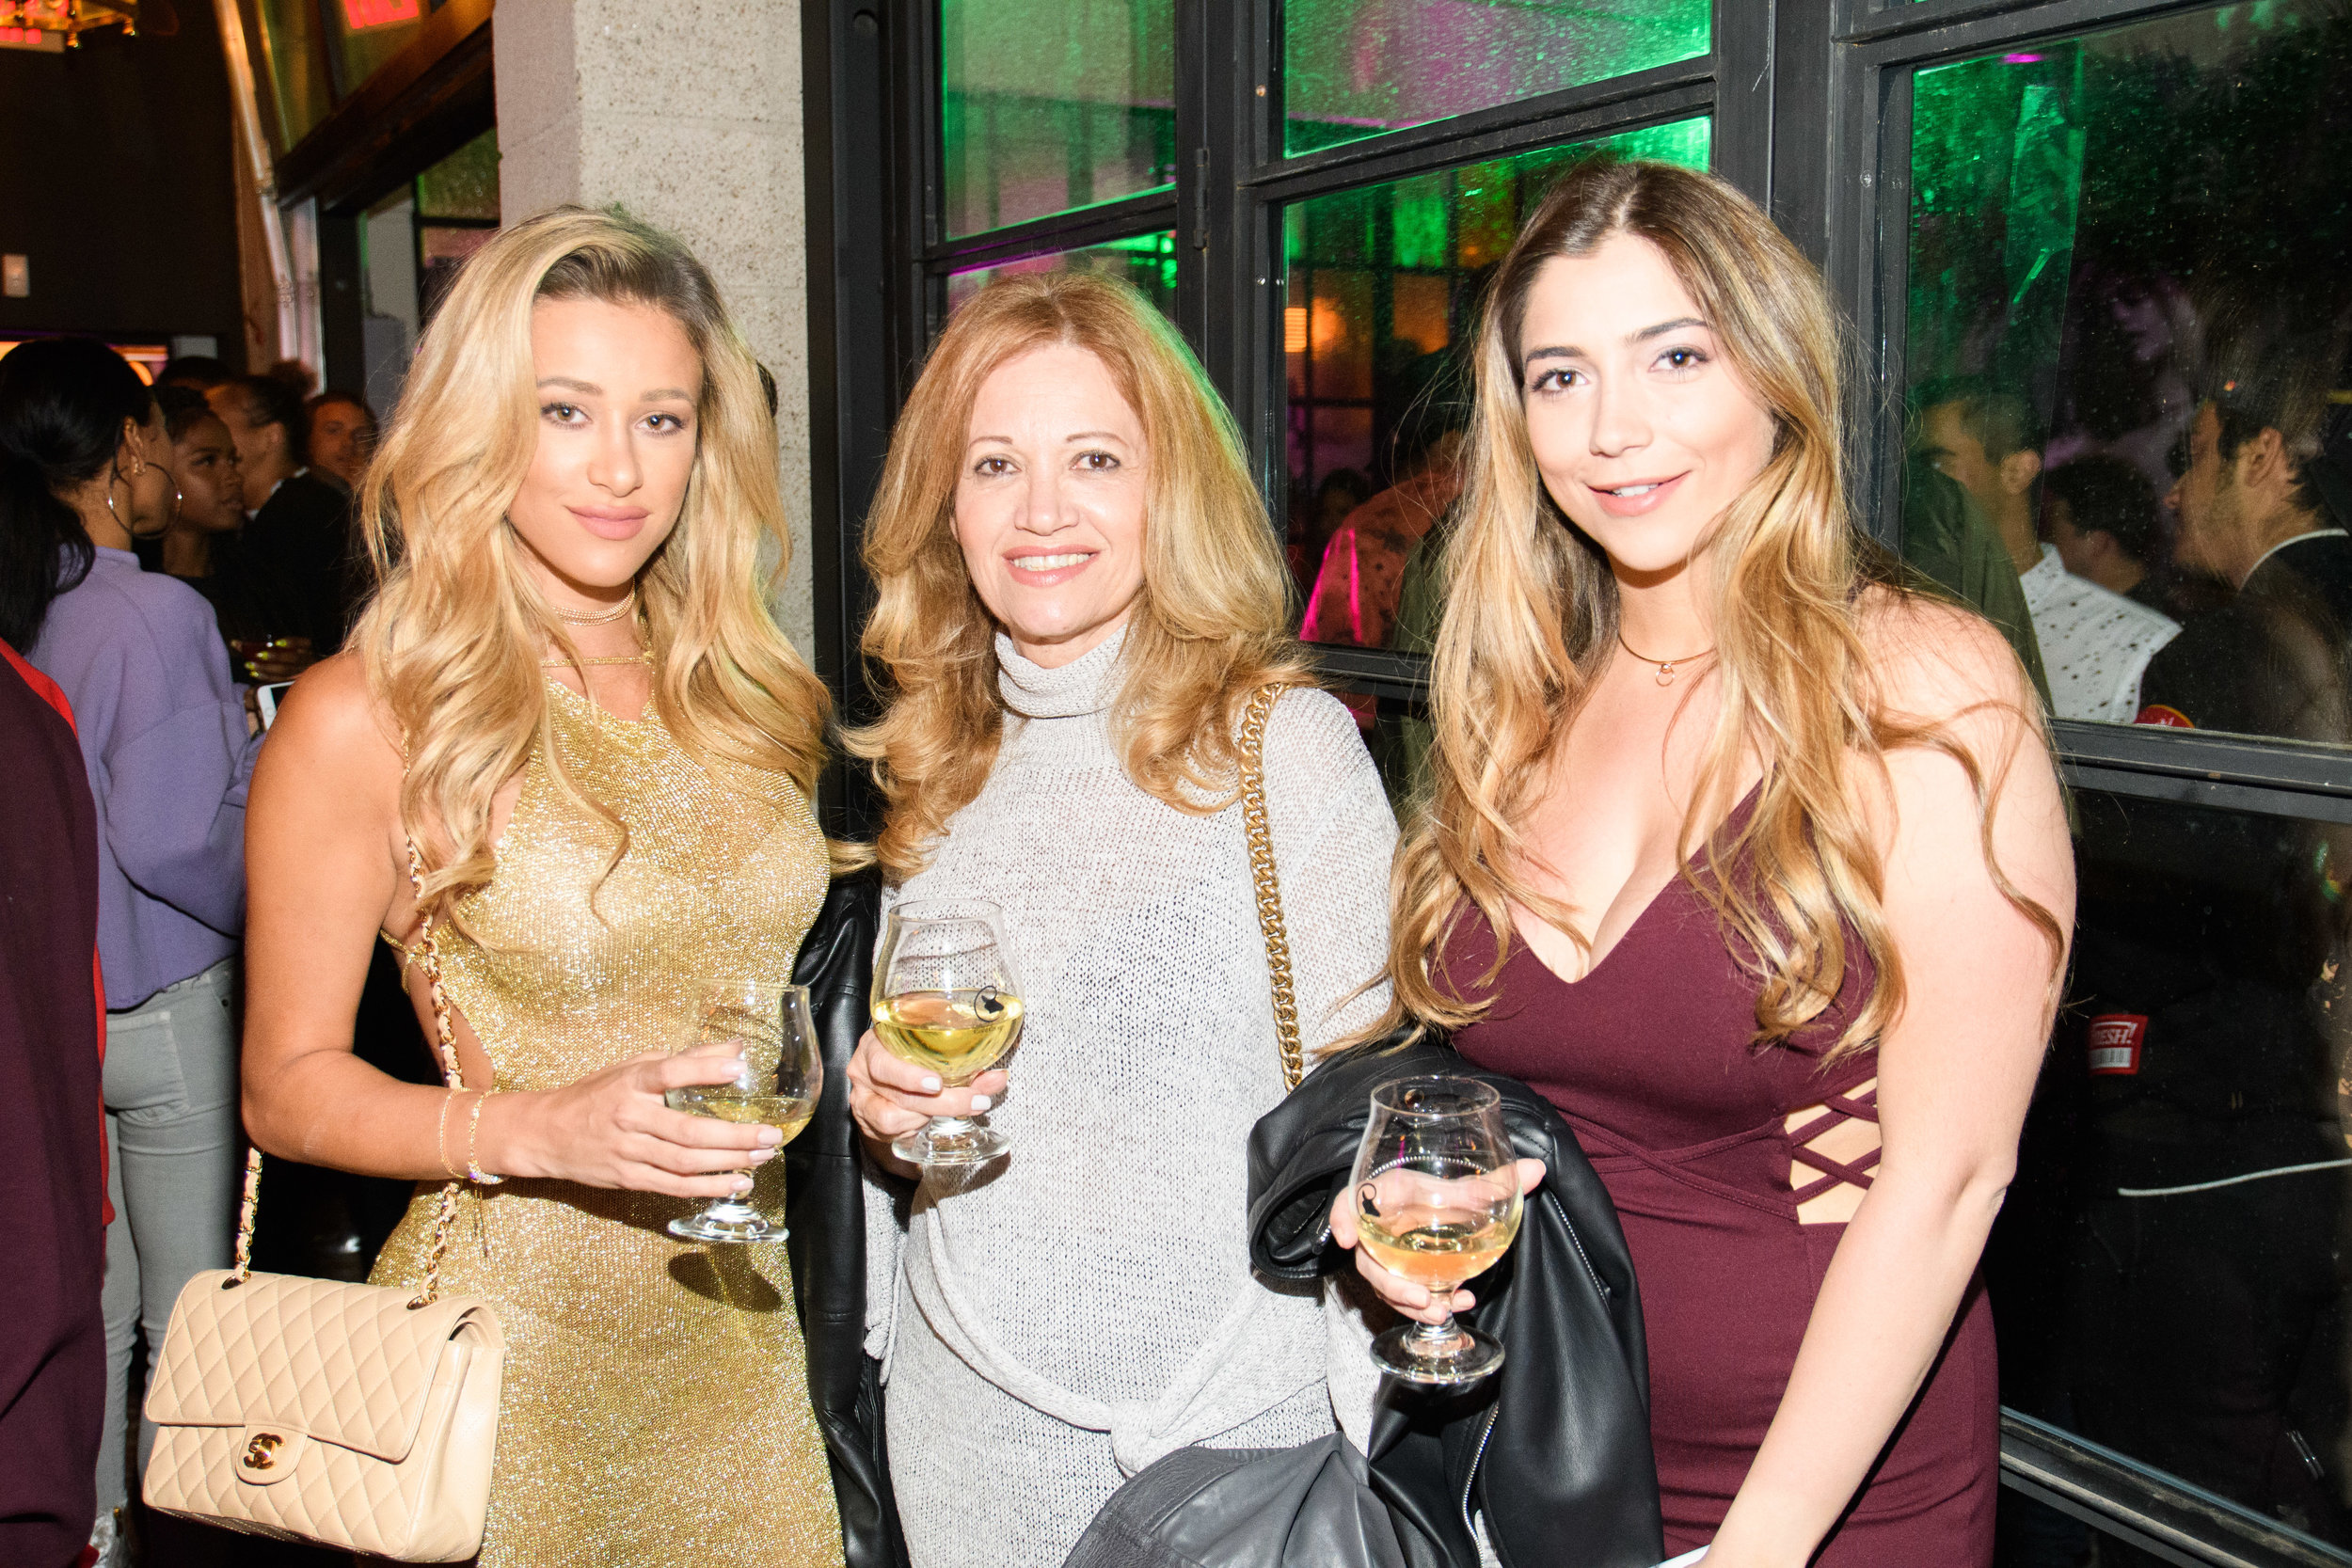 PrettyLittleThing New PLT Shape Collection with Stassie Celebrity Launch Party having fun at The Phoenix LA.jpg